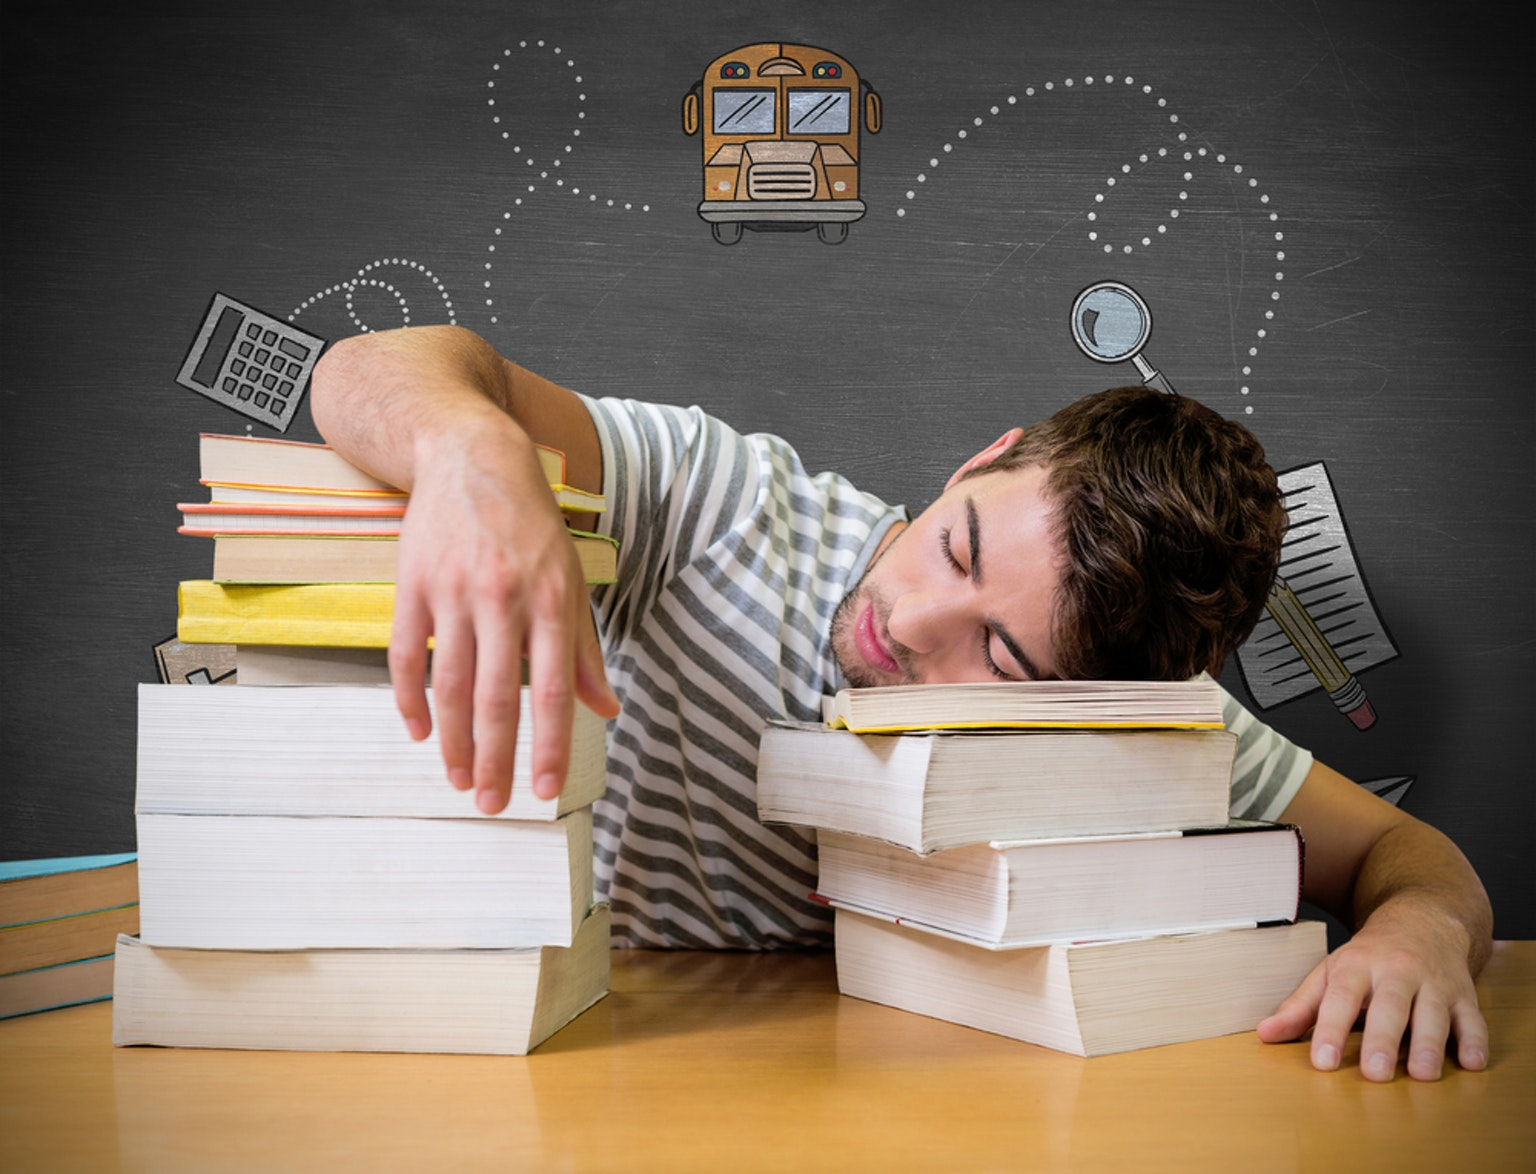 Student sleeping with head and arms on books